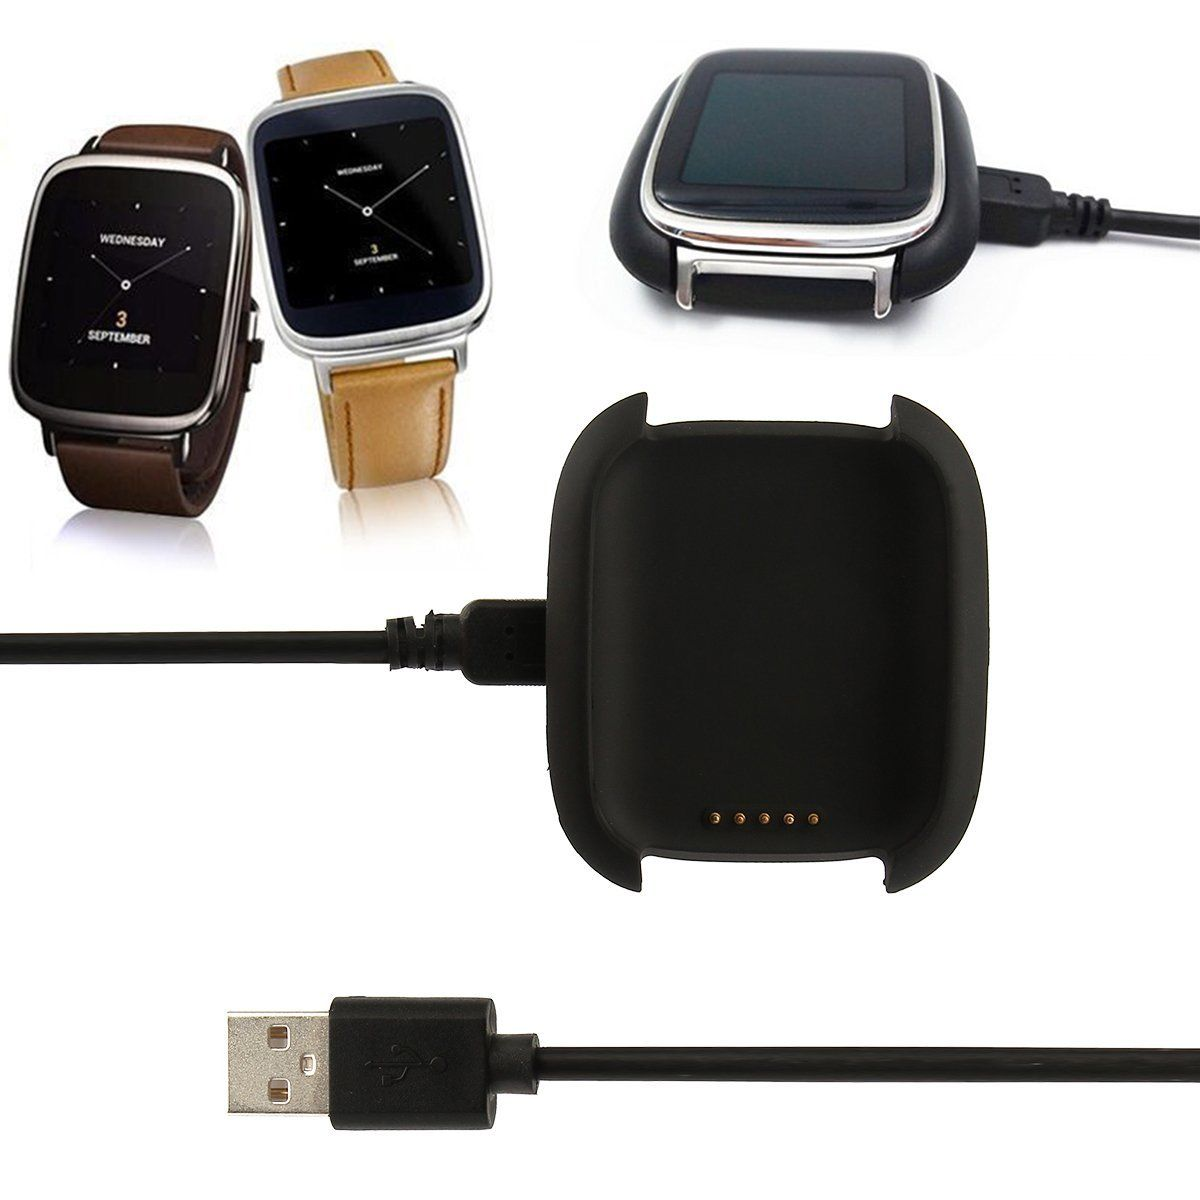 Charger Charging Dock Cradle Stand Station + Cable For Asus ZenWatch Smart Watch